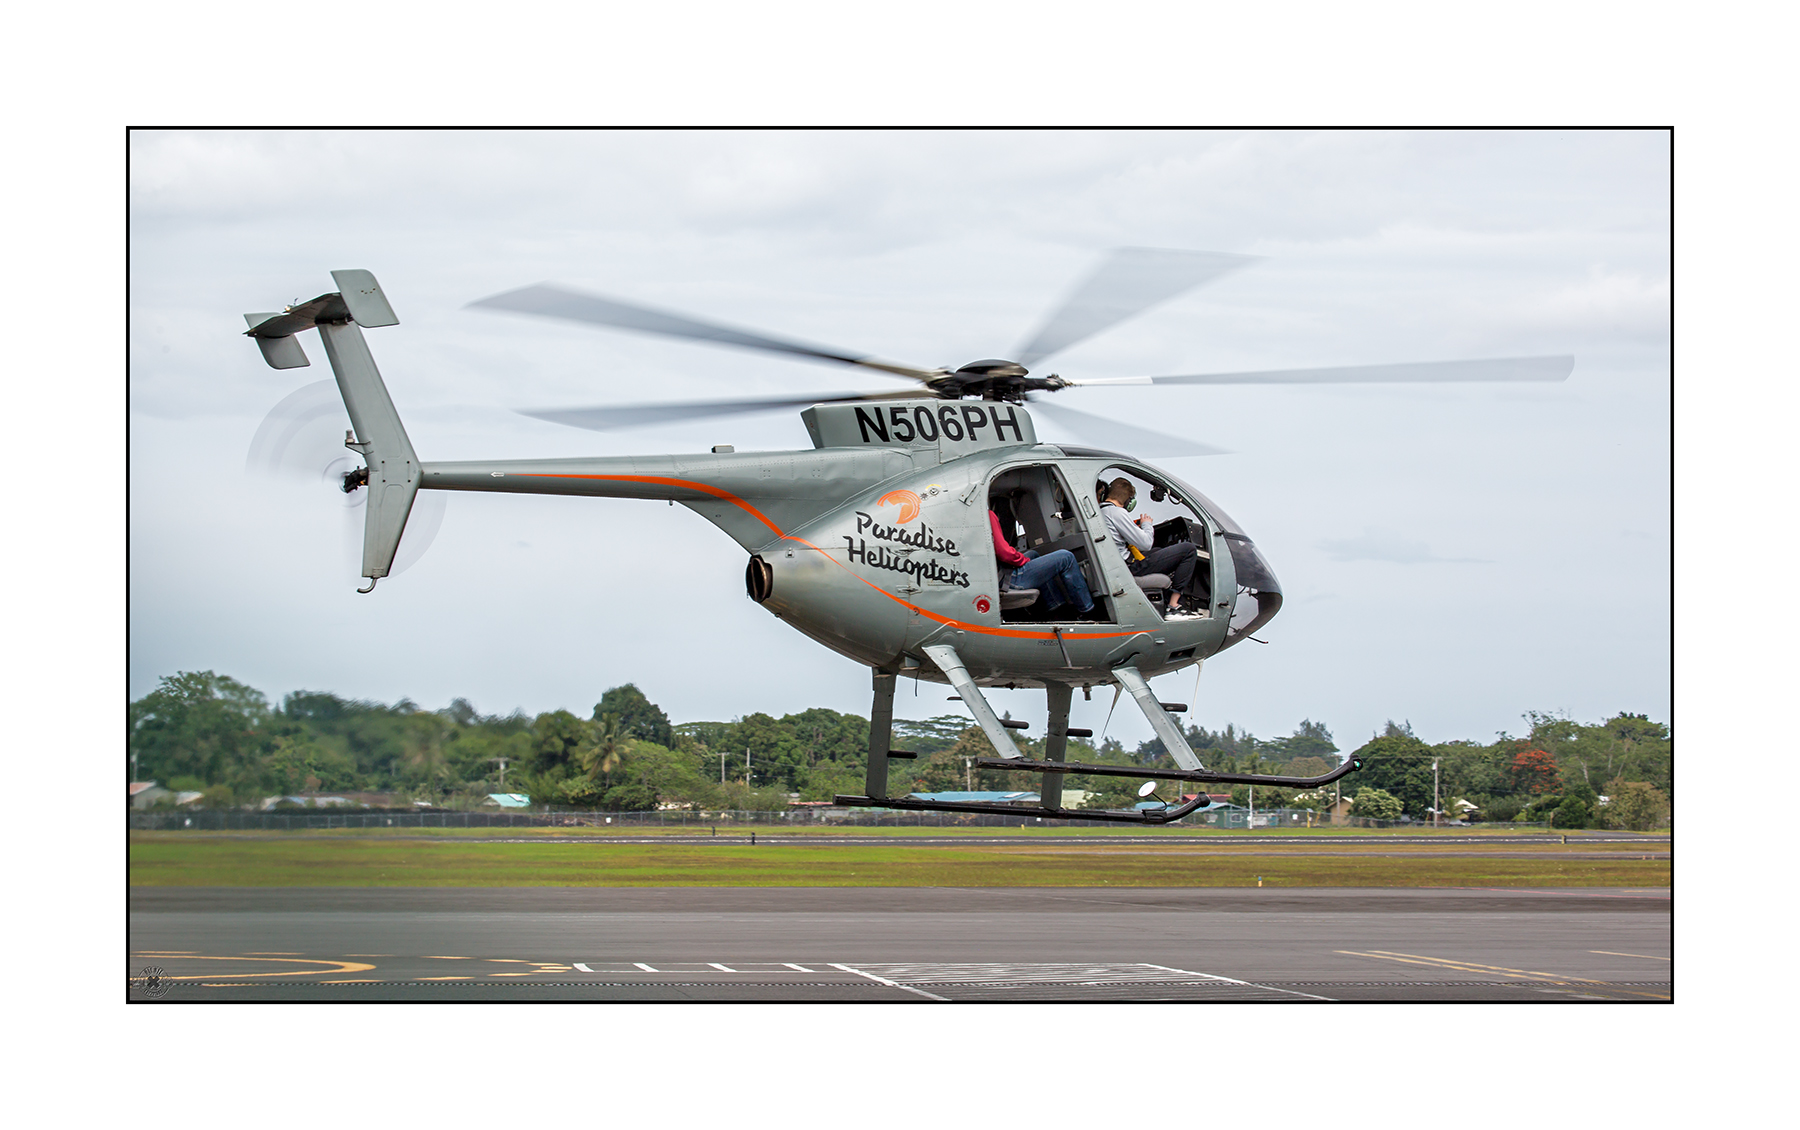 Hughes MD500E N506PH Paradise Helicopters Hilo Airport